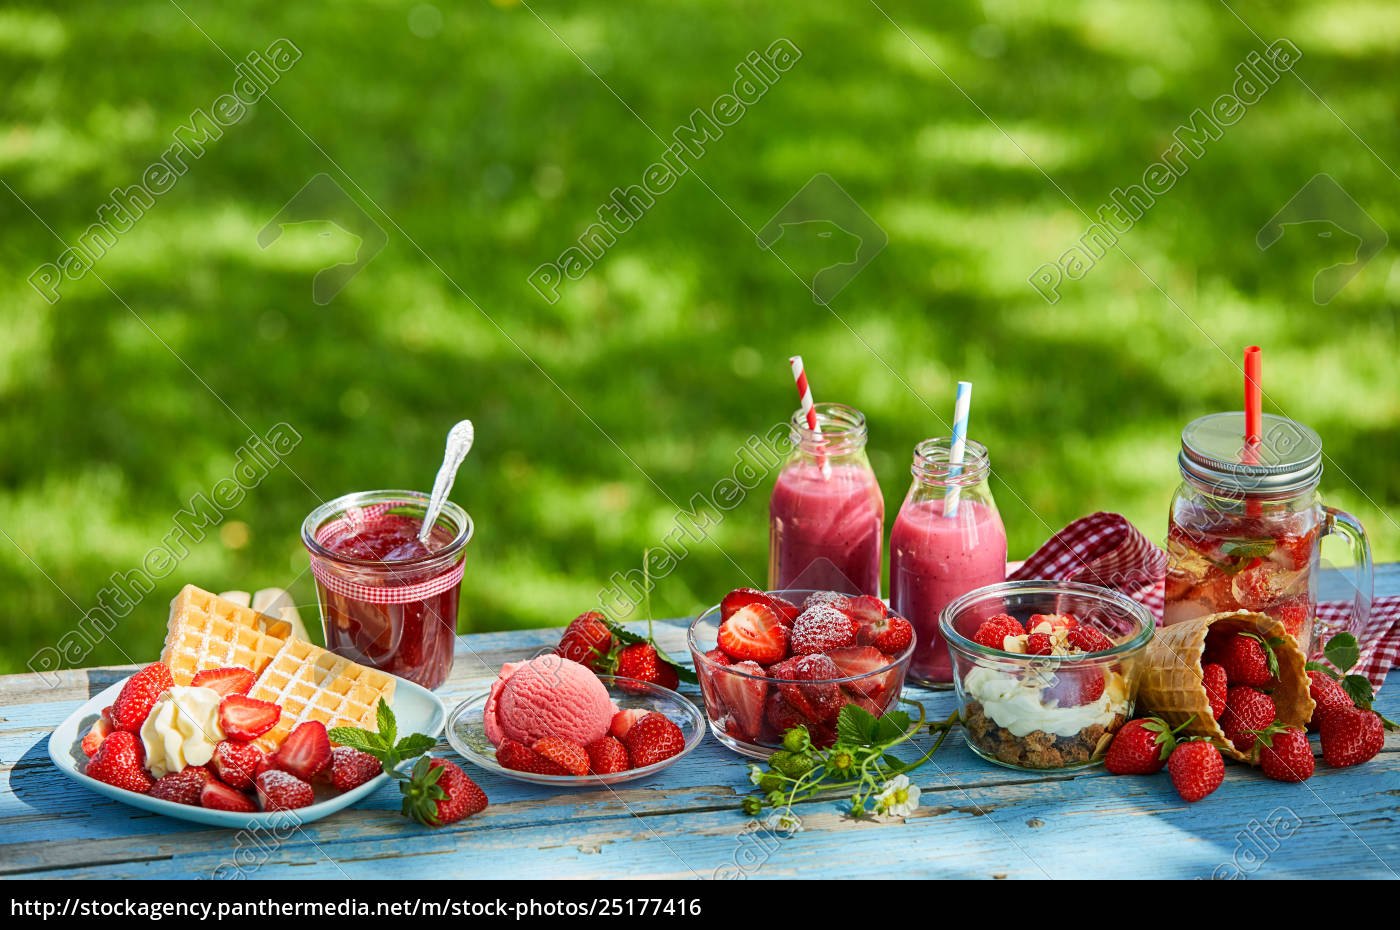 fresh, , vibrant, summer, strawberry, desserts, picnic - 25177416